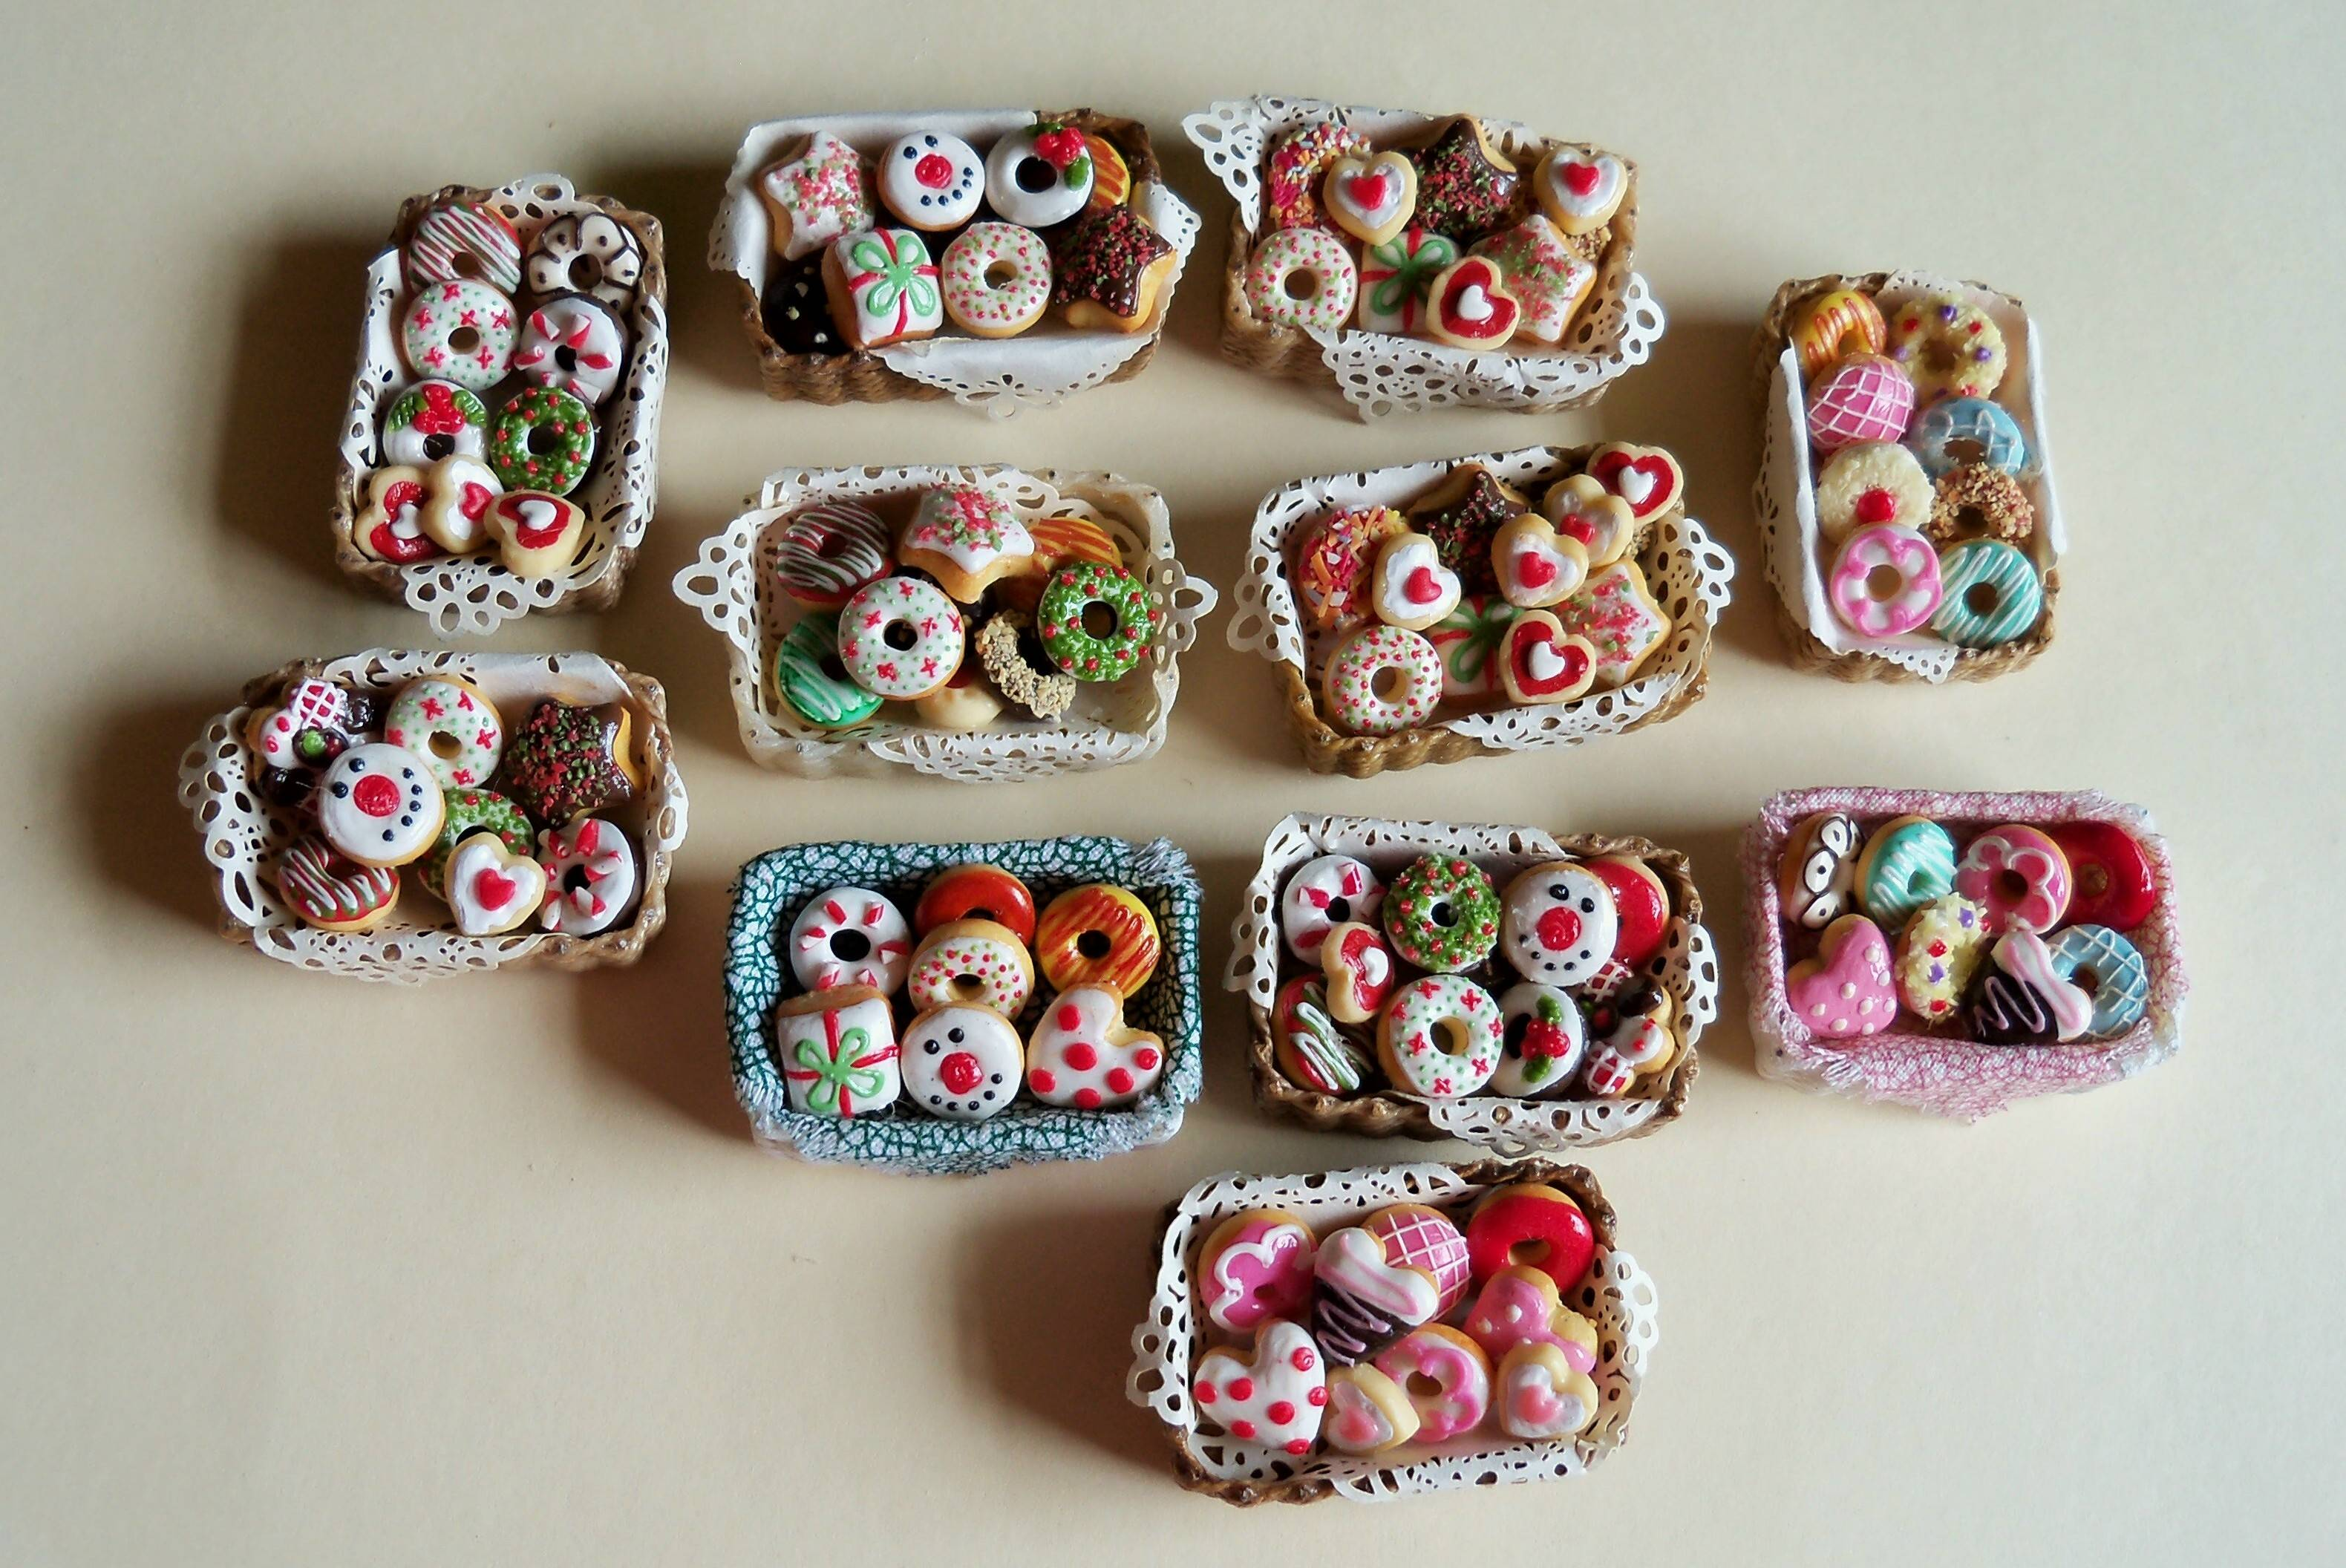 Assorted pastry baskets